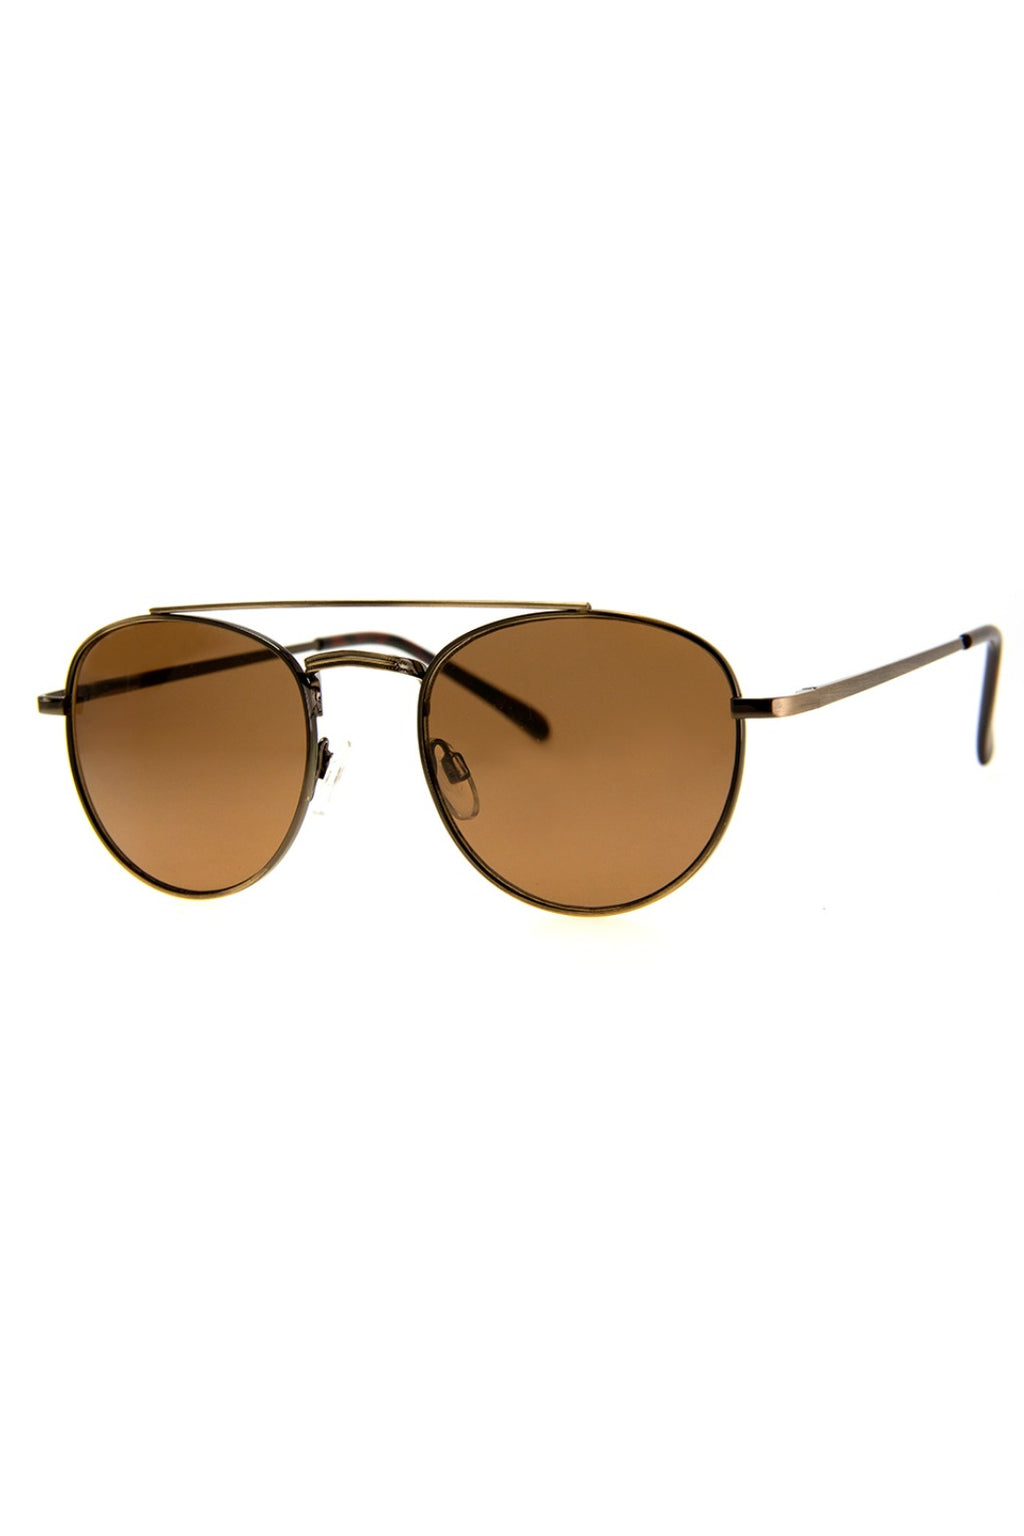 Chime Sunnies - Bronze